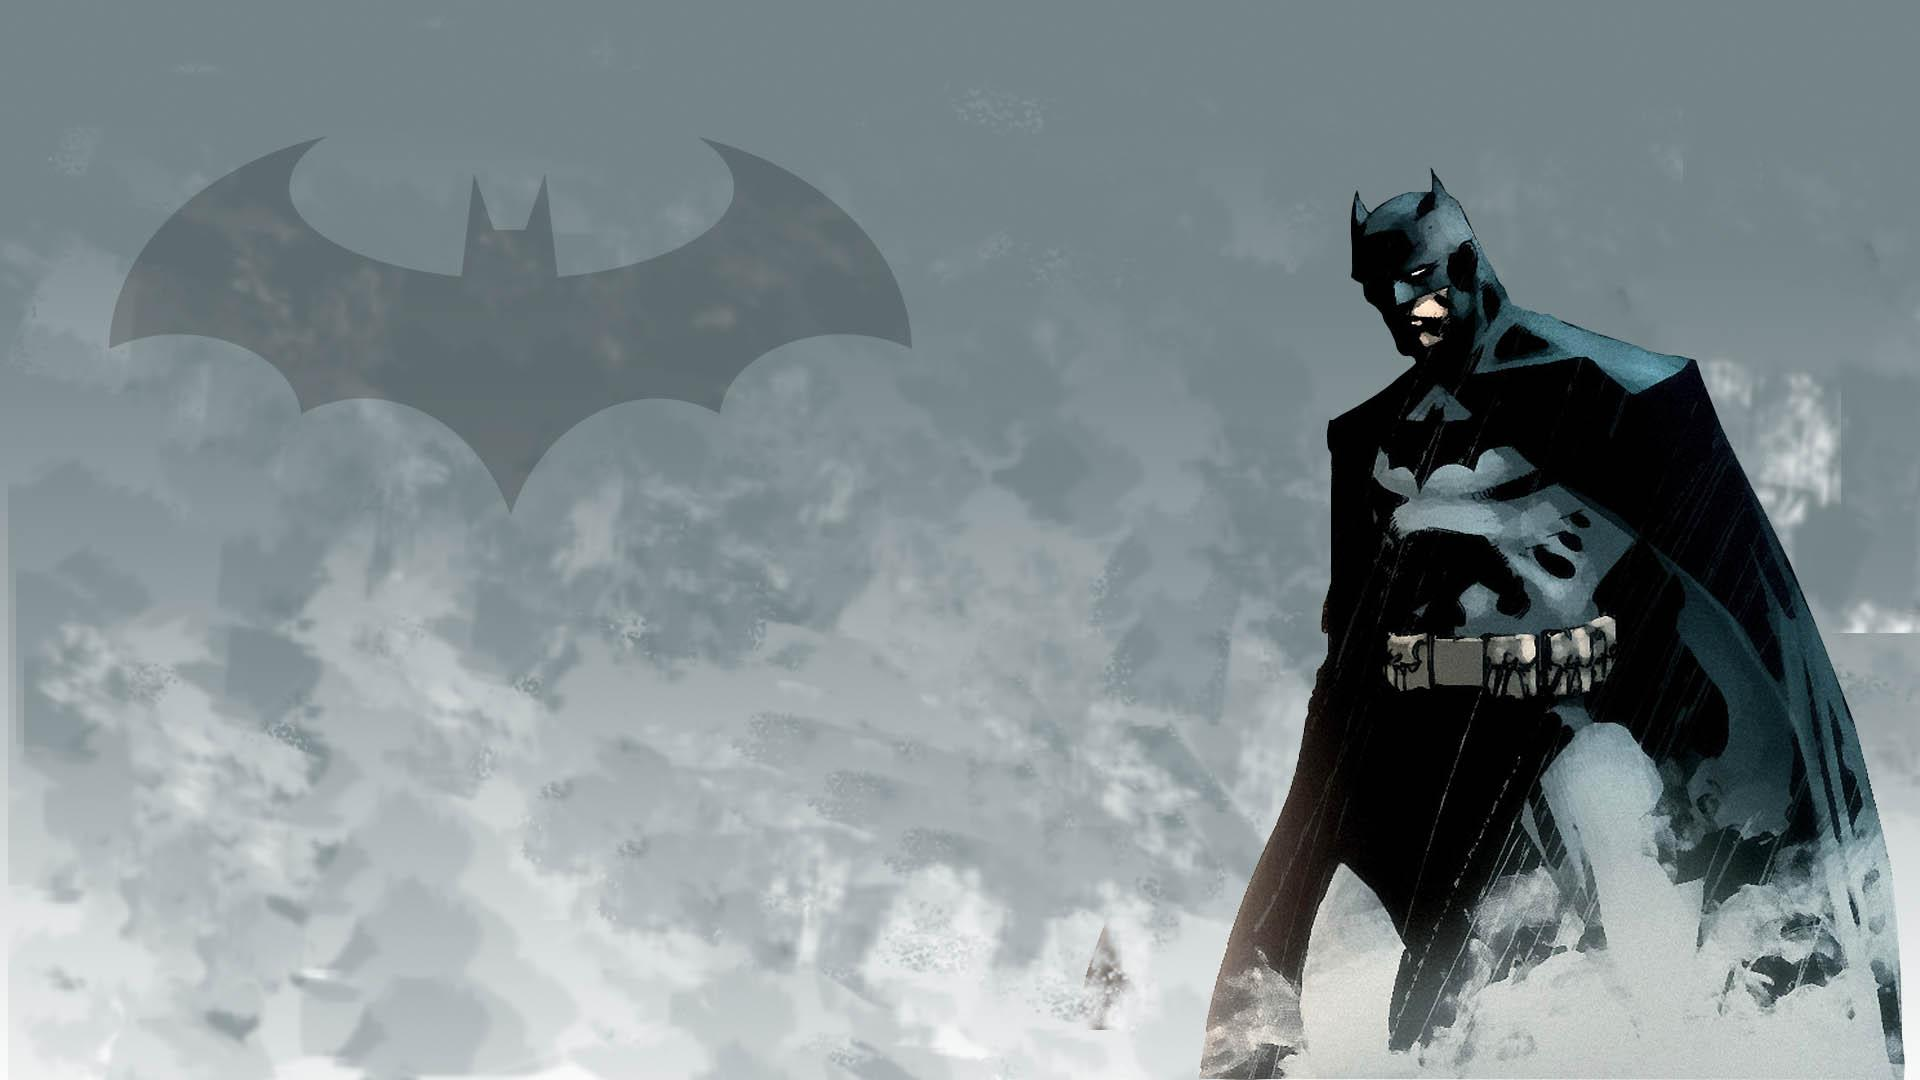 My Batman Jim Lee Wallpaper 1920x1080 ComicWalls 1920x1080